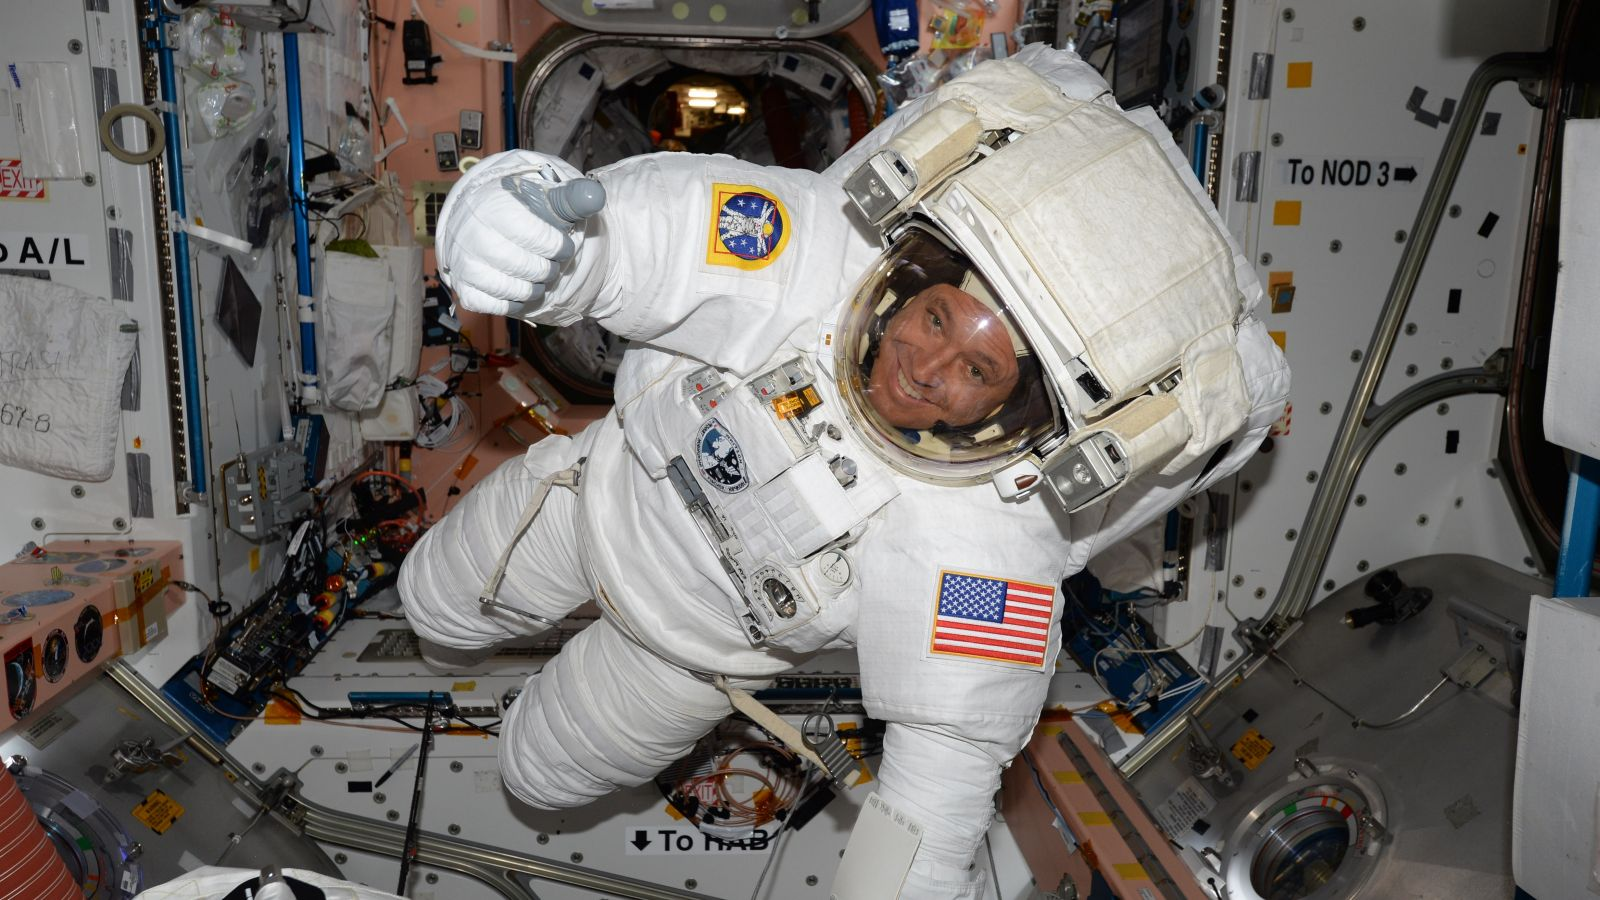 Equipment water leak shortens spacewalk by 2 USA  astronauts